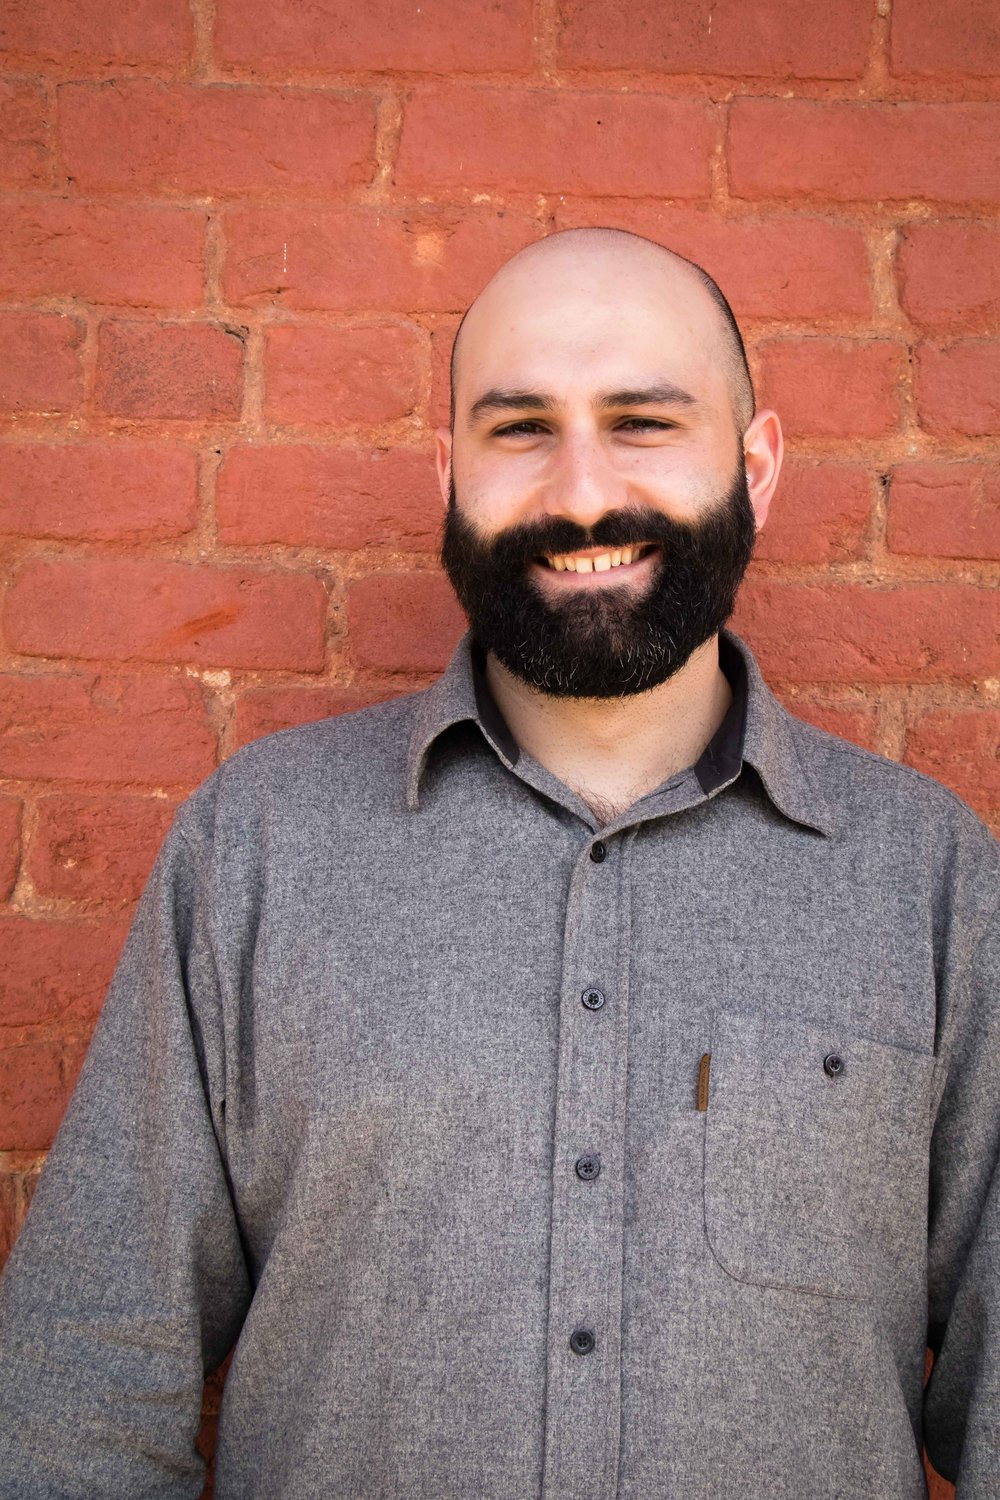 Djavid Amidi-Abraham, Lead Systems Designer  Djavid oversees project development and helps clients determine the right growing method, crop choice, and labor management methods. He has a professional background in sustainable technologies including hydroponic equipment distribution, vertical axis wind turbine sales, and carbon sequestration applications. Djavid's focus is to build the most sustainable and low-carbon systems possible. He holds a BA in History and Environmental Studies from Binghamton University, and has developed and worked on farms internationally.   LinkedIn